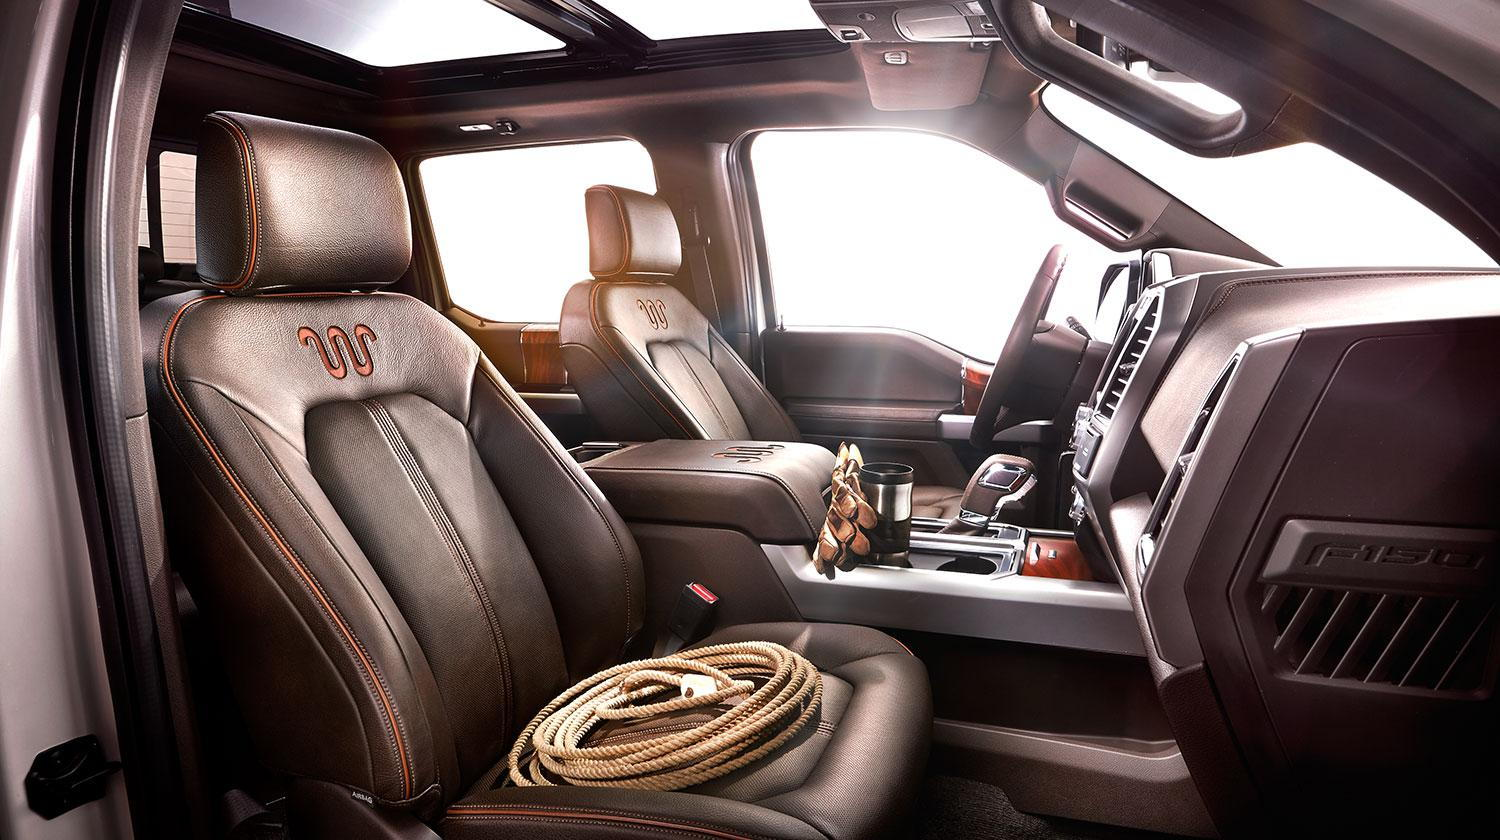 2015 King Ranch Interior Color Page 2 Ford F150 Forum Community Of Ford Truck Fans